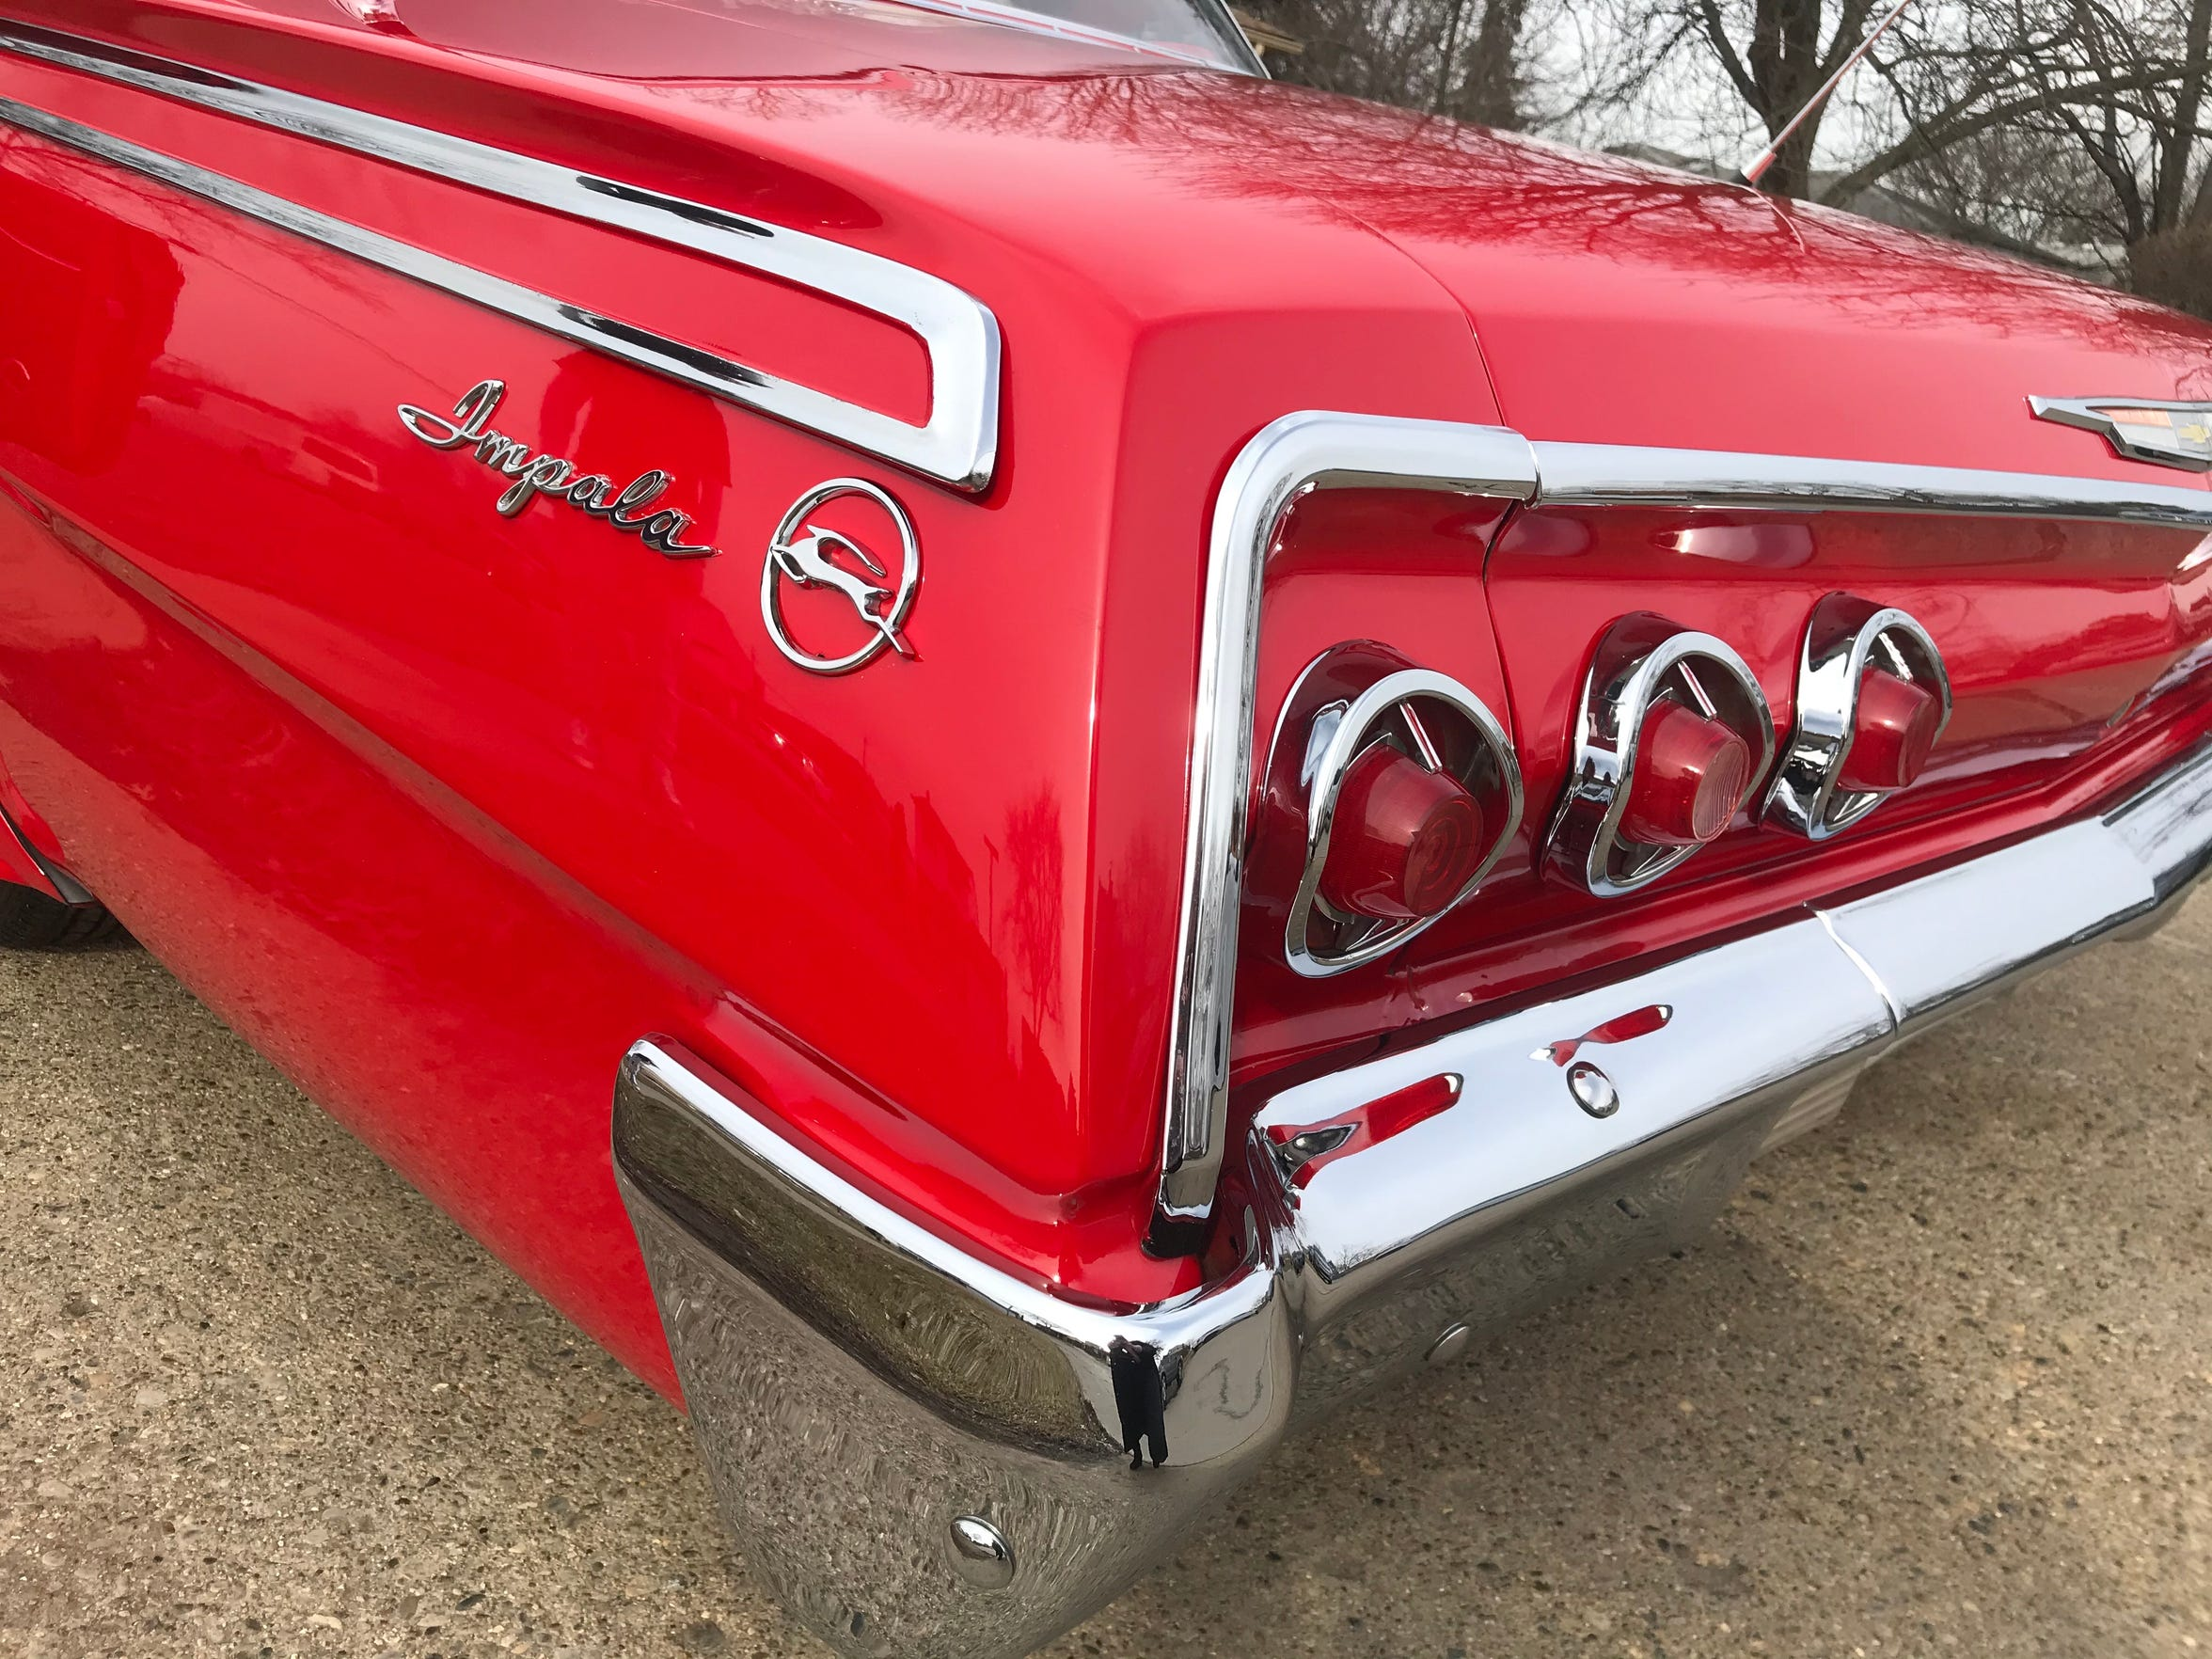 The recognizable back end and taillights of Ferras Sabo's 1962 Chevrolet Impala low rider.